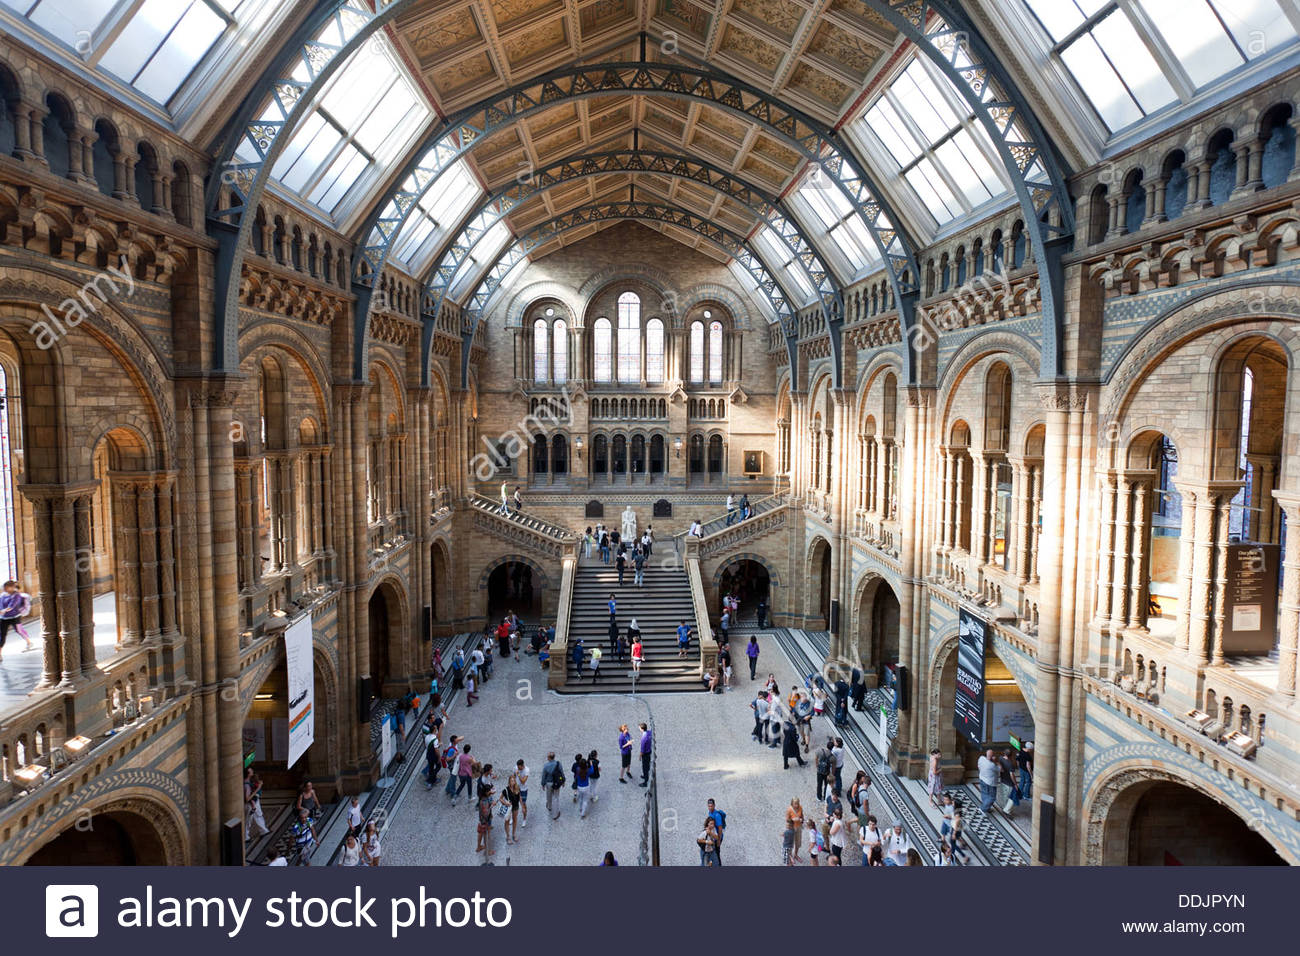 Inside the Natural History Museum, In London, England, U.K. - Stock Image